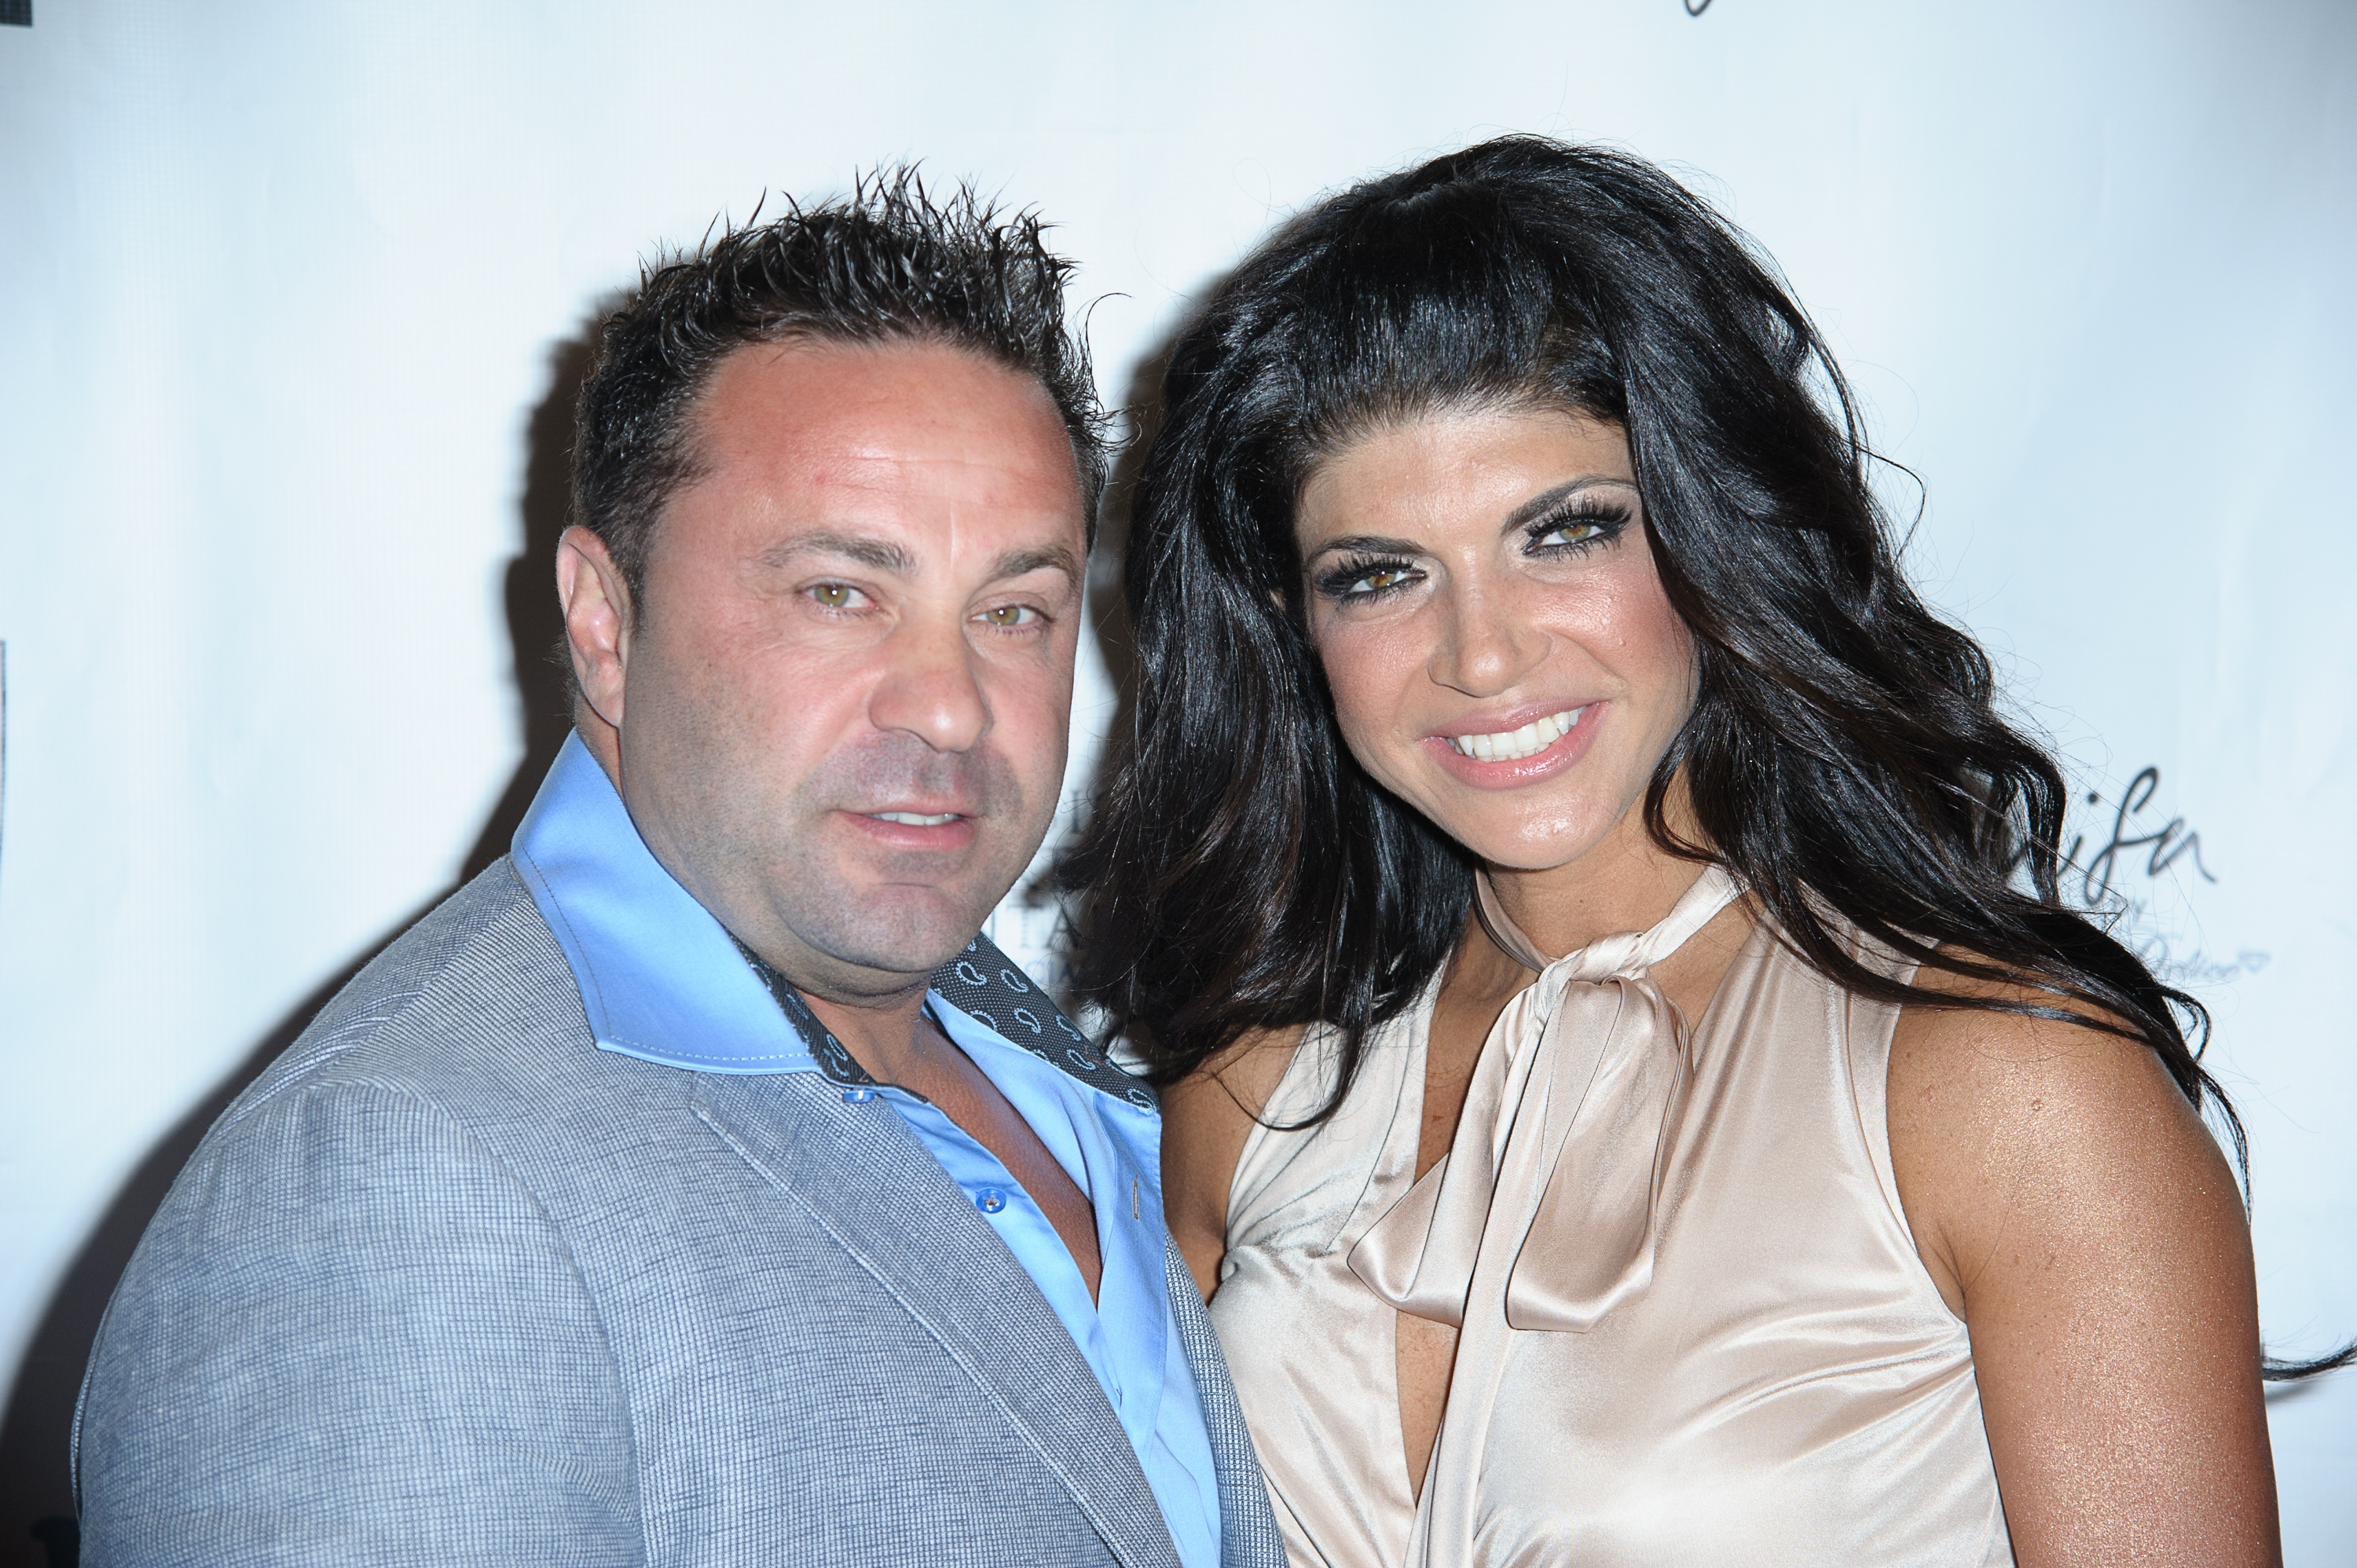 Teresa-Giudice-and-Joe-Giudice-attends-A-Night-Under-The-Stars-Benefiting-Juvenile-Diabetes-Research-Foundation-at-Sear-House-on-April-10-2013-in-Closter-New-Jersey